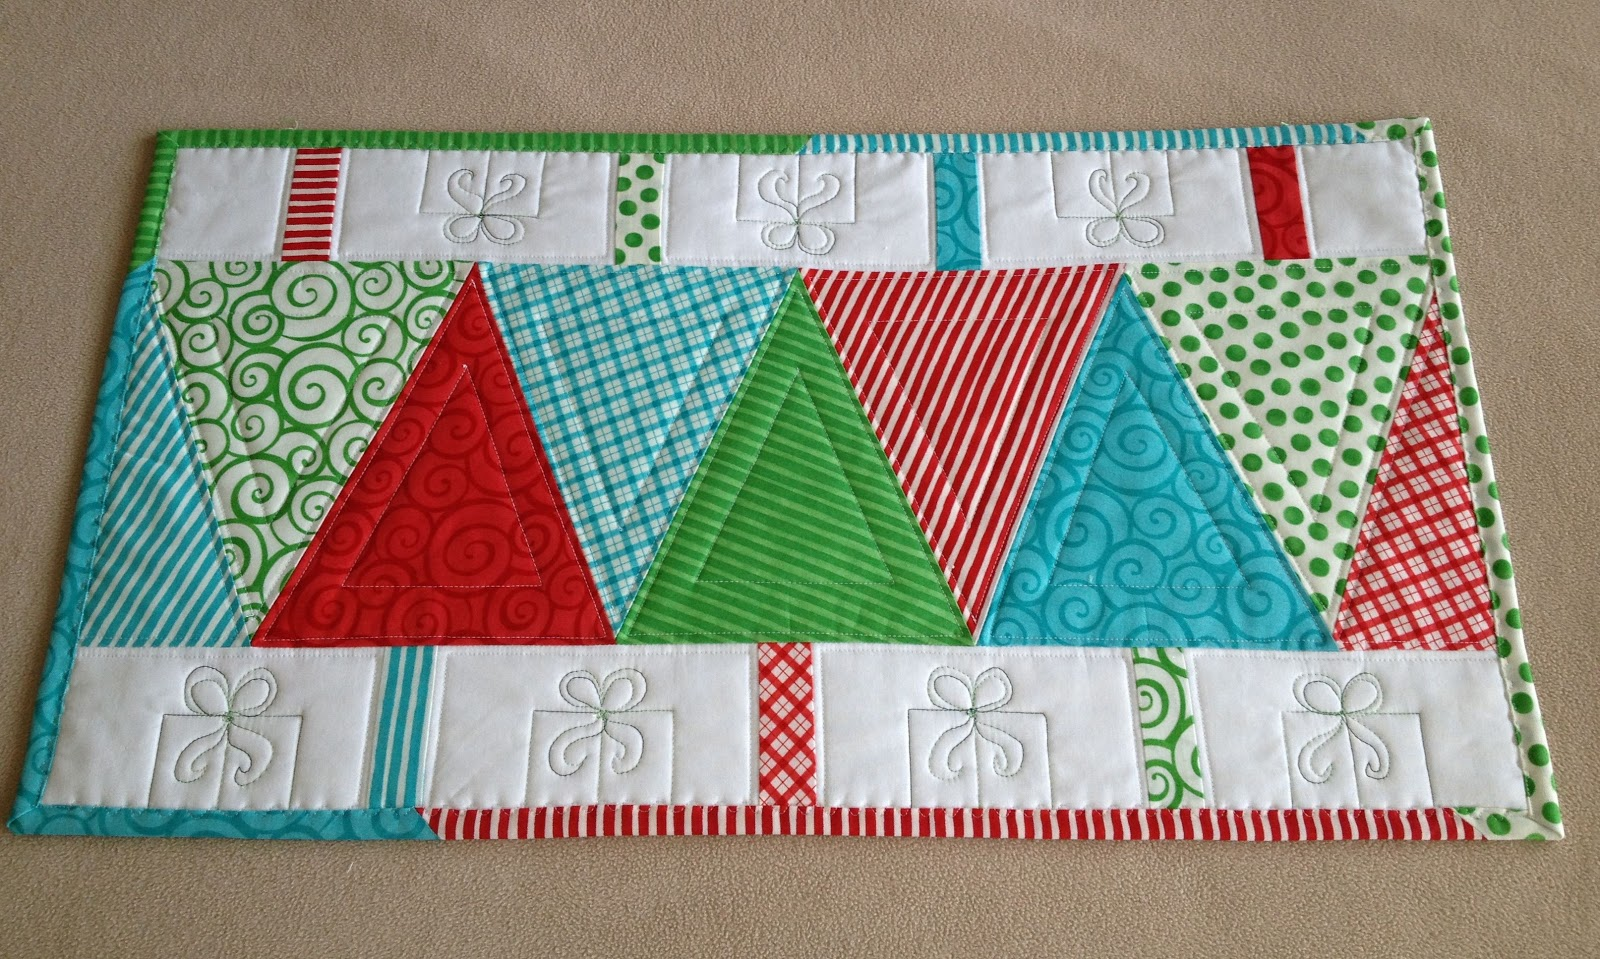 Table Runner: NEW 598 MODERN QUILTED TABLE RUNNER PATTERNS